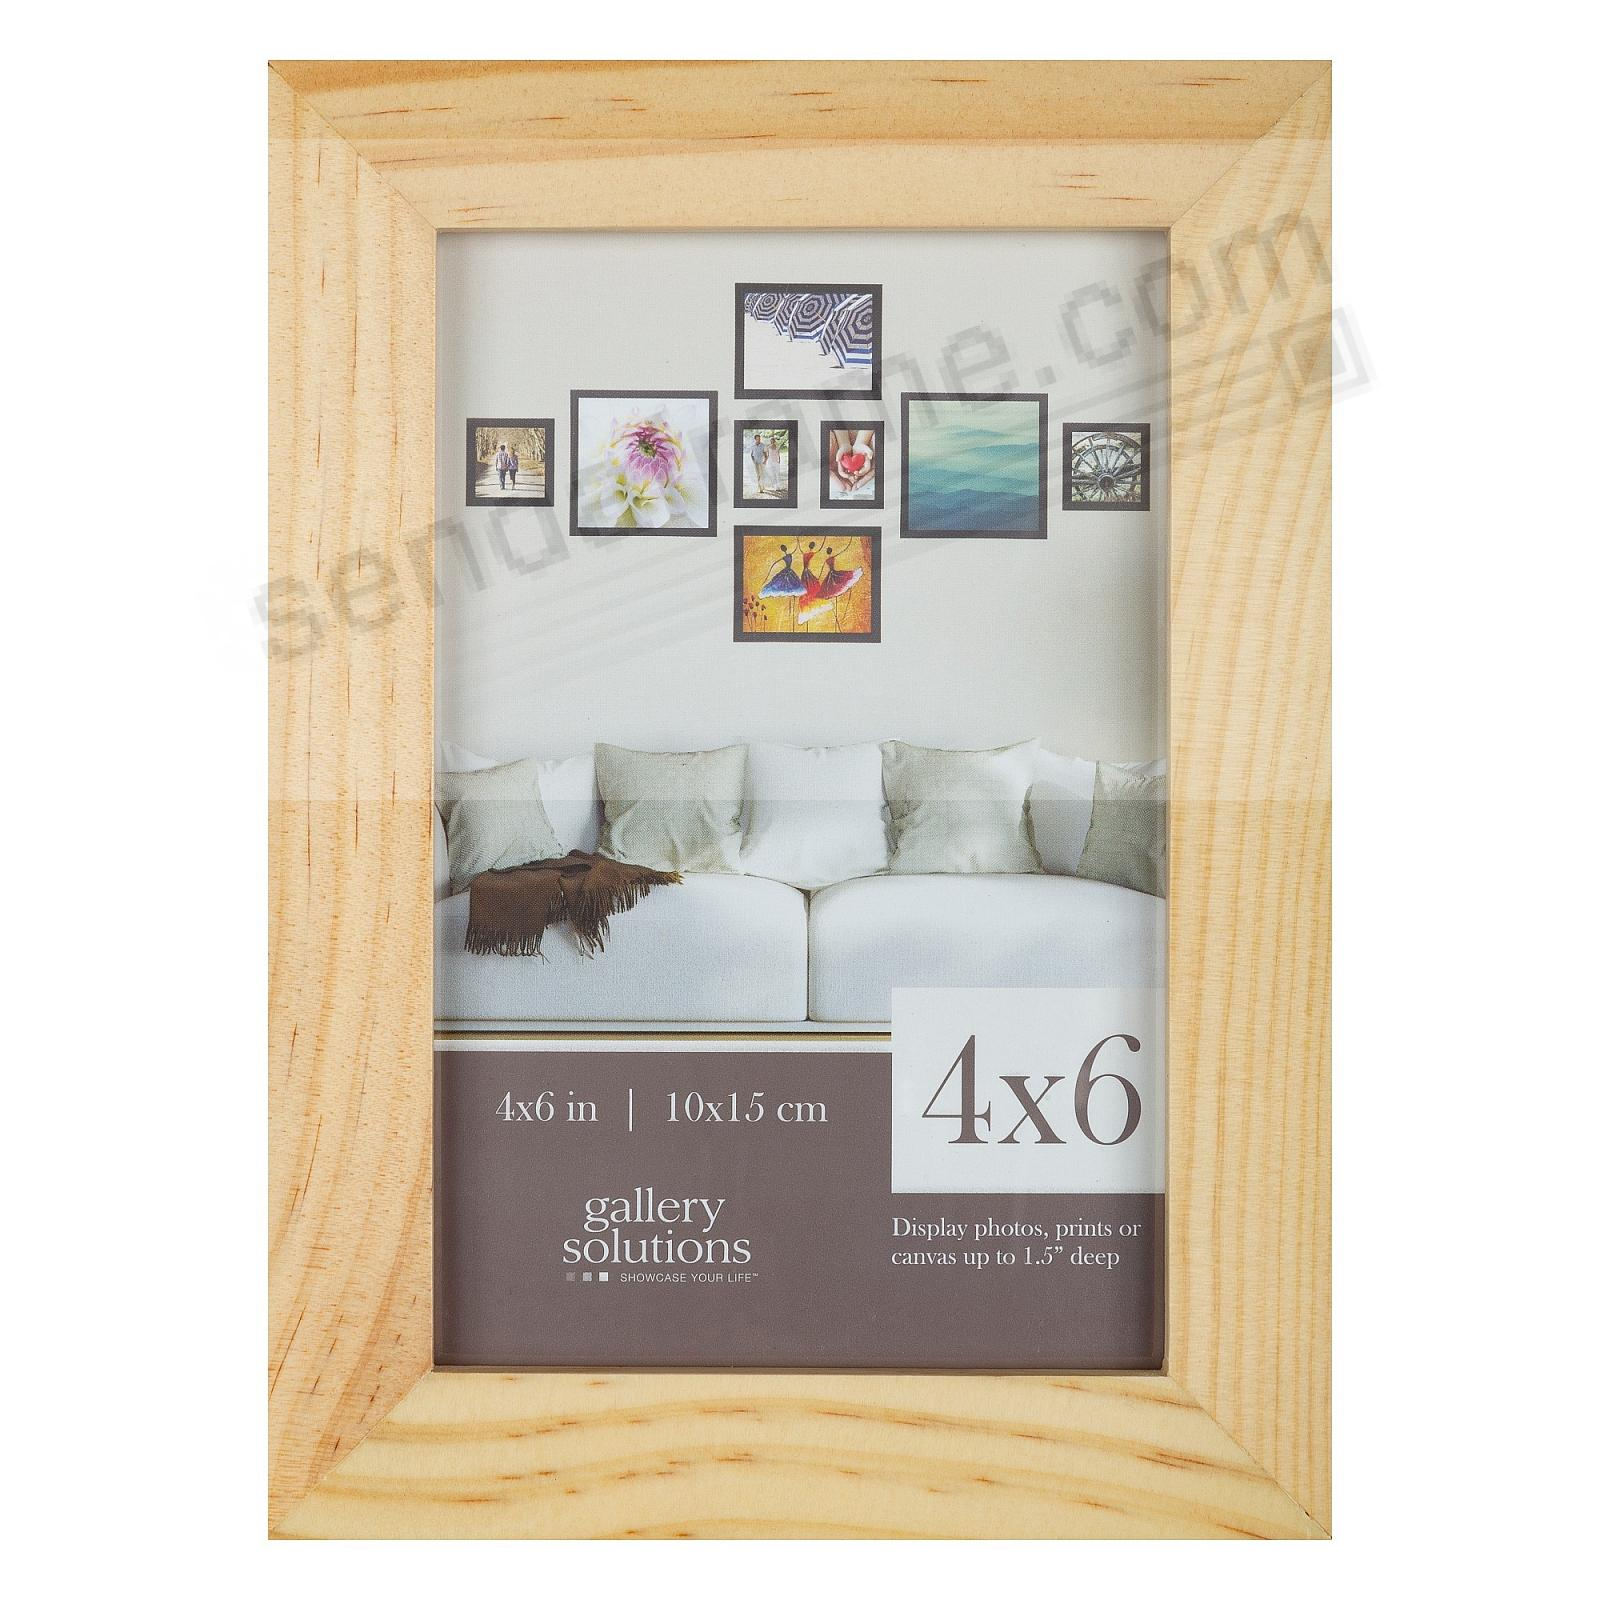 NATURAL GALLERY 4x6 frame by Gallery Solutions®